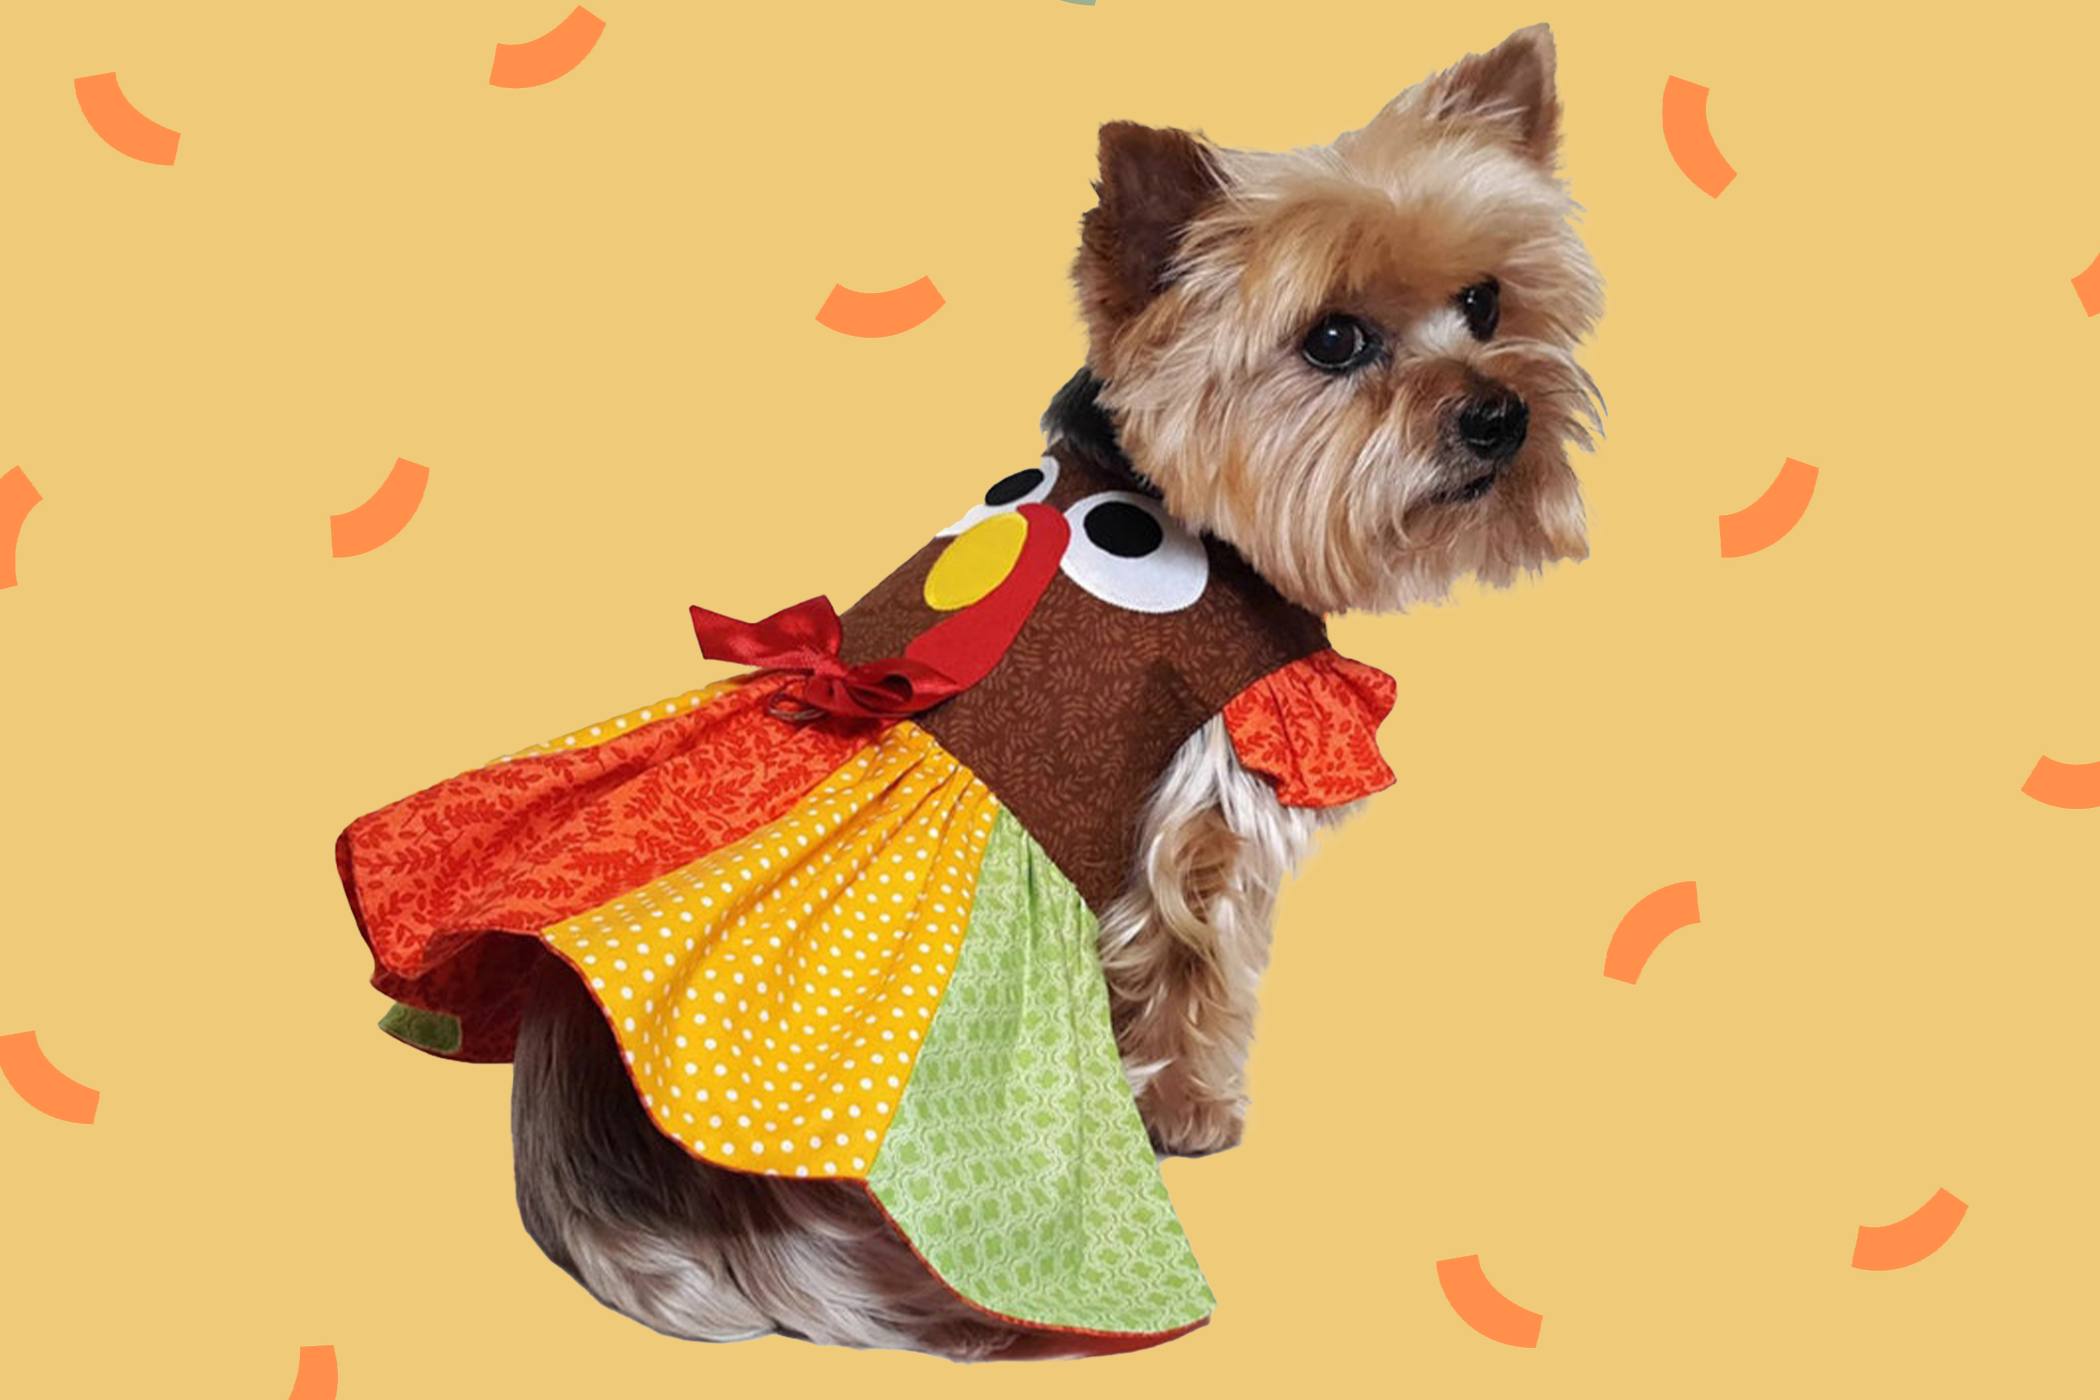 yorkie wearing a cute thanksgiving outfit on a yellow background